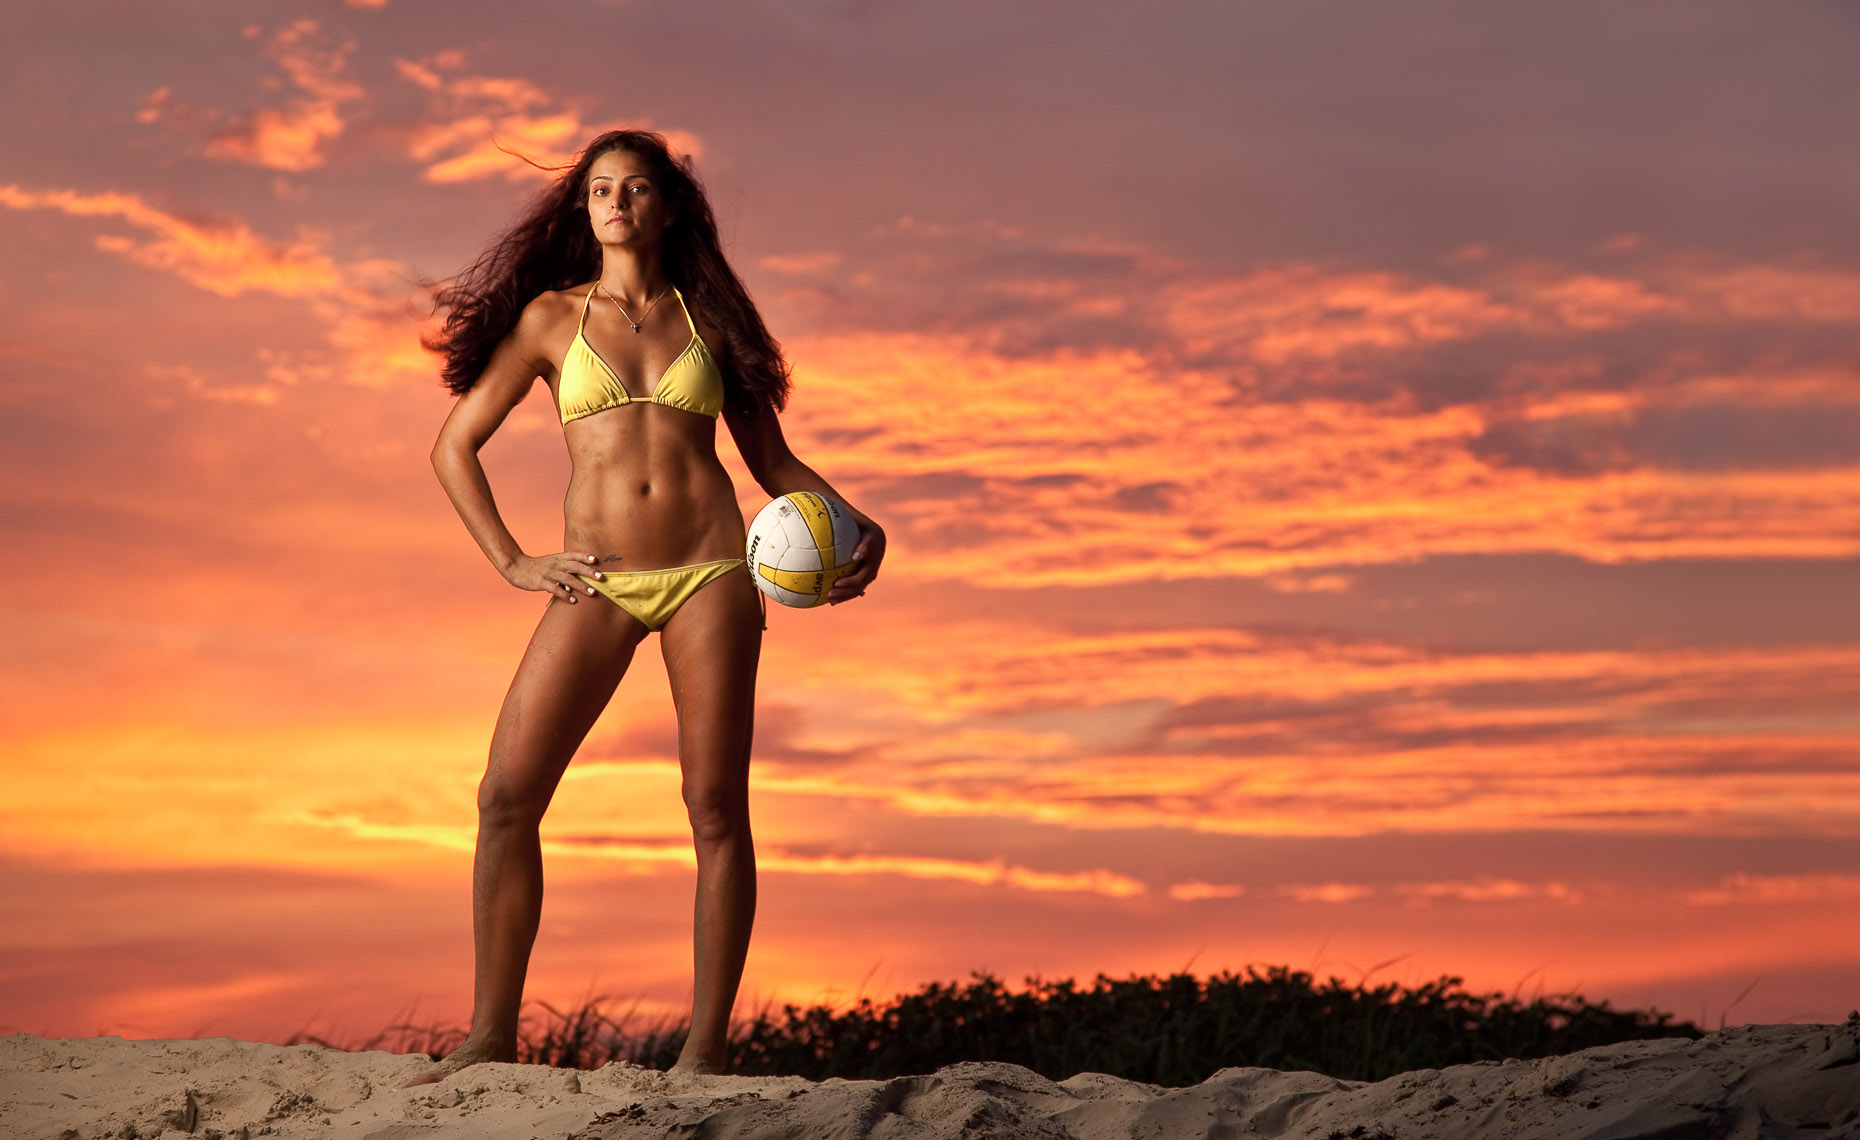 SEALE_SPORTS_PORTRAIT AVP BEACH VOLLEYBALL BIKINI